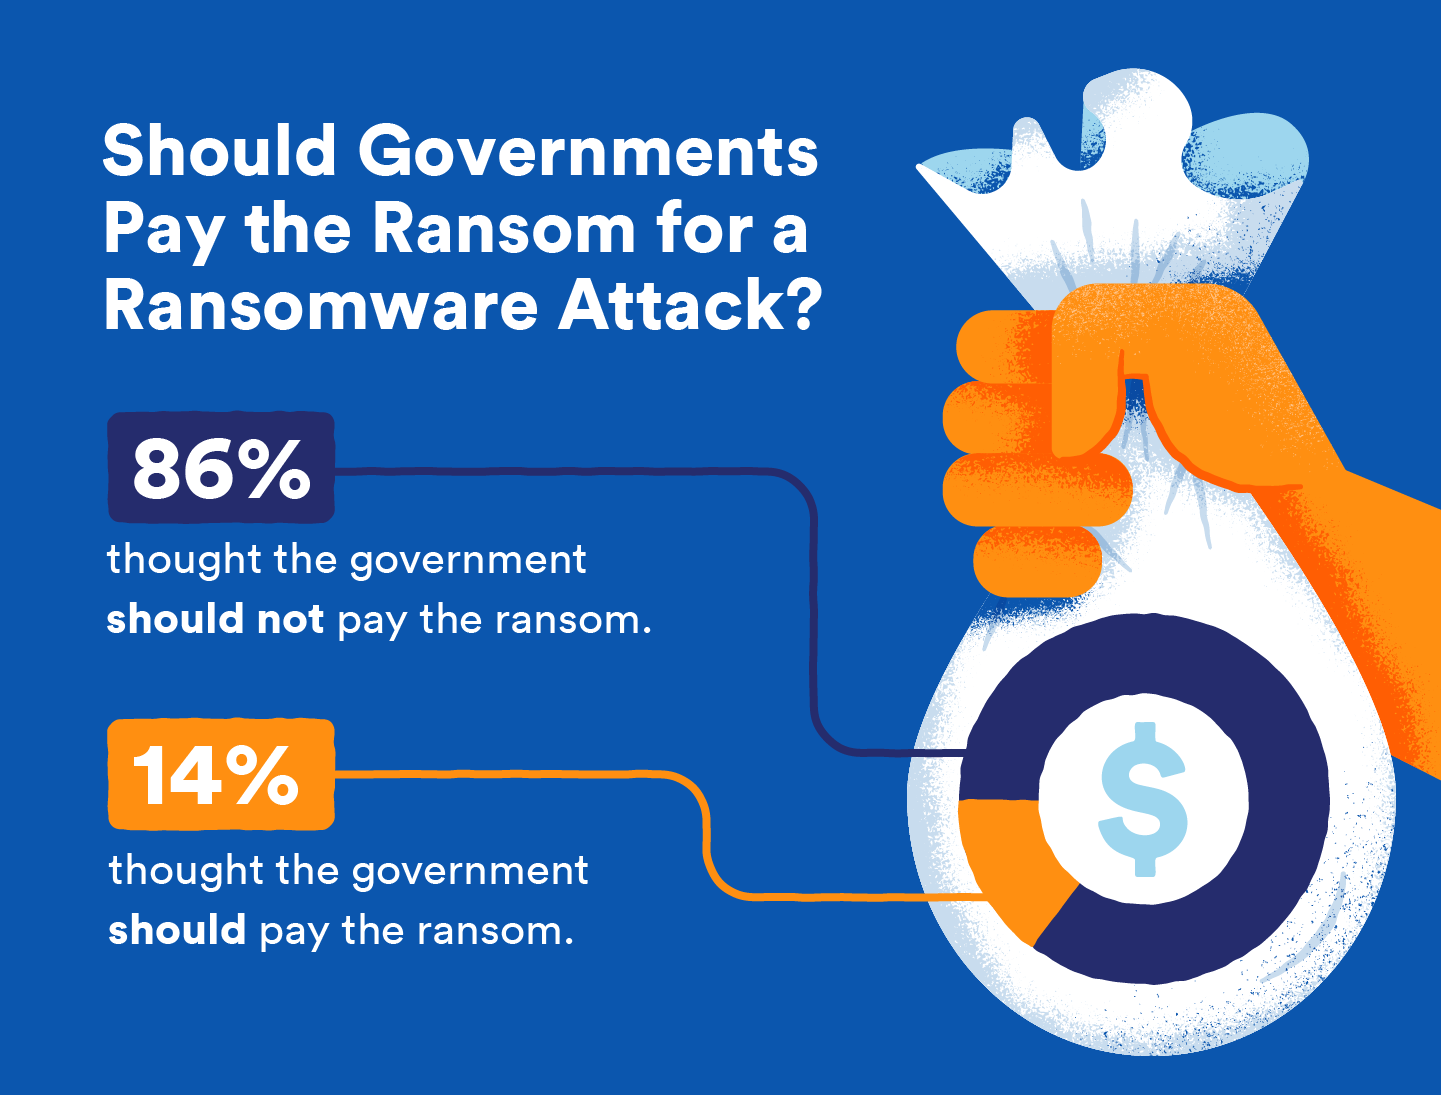 [Heads-up] Will Proposed New Laws *Ban* Making Ransomware Payments?